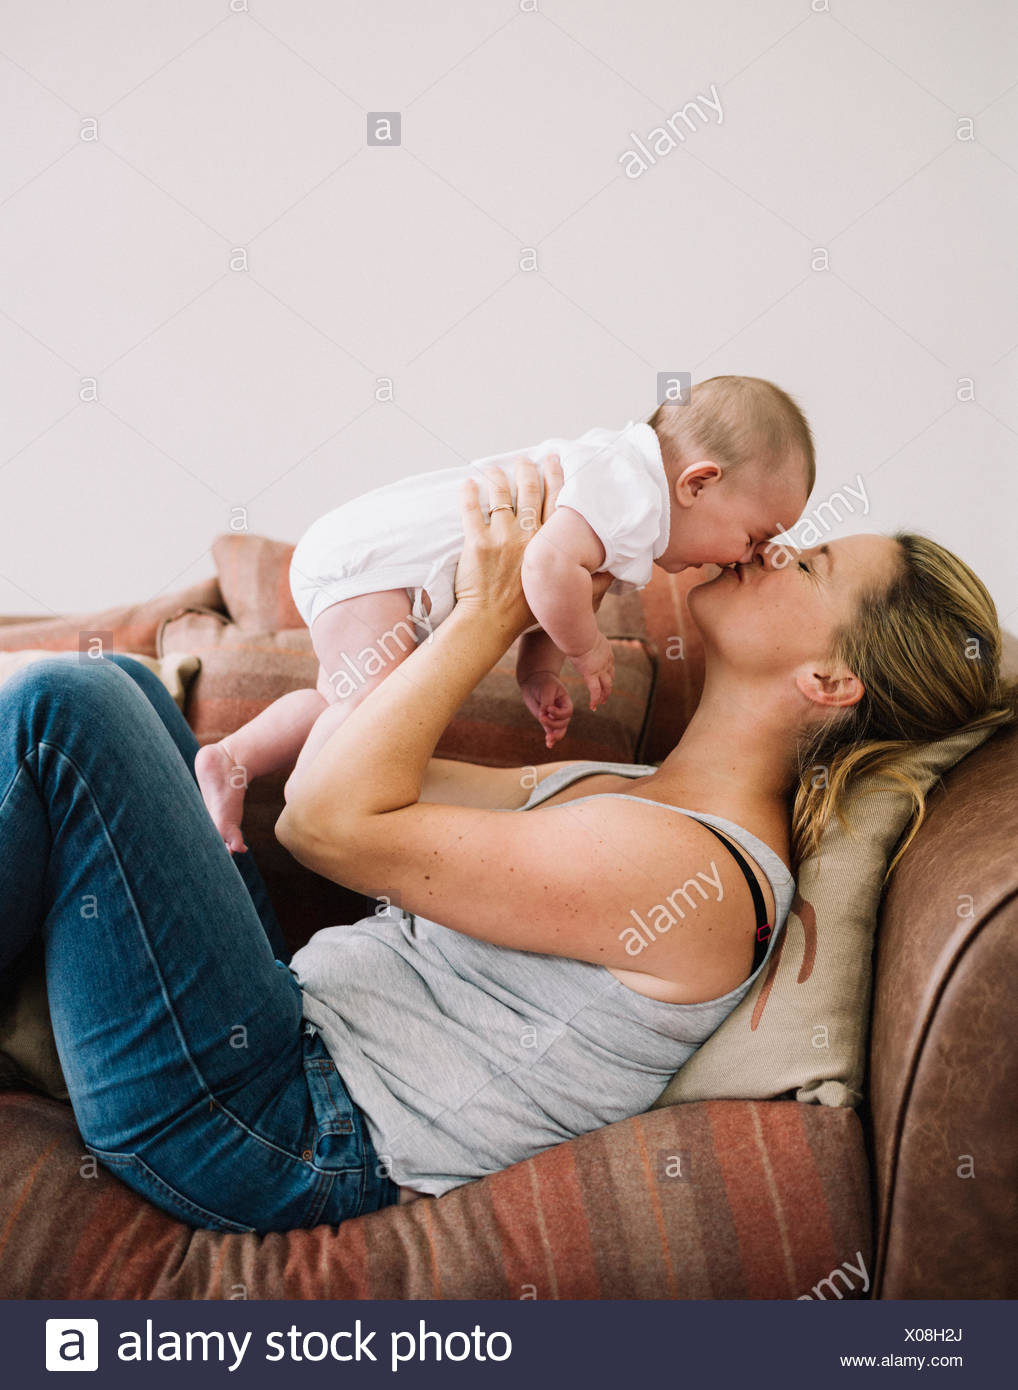 A woman lying on a sofa playing with a baby girl, kissing her cheek. - Stock Image